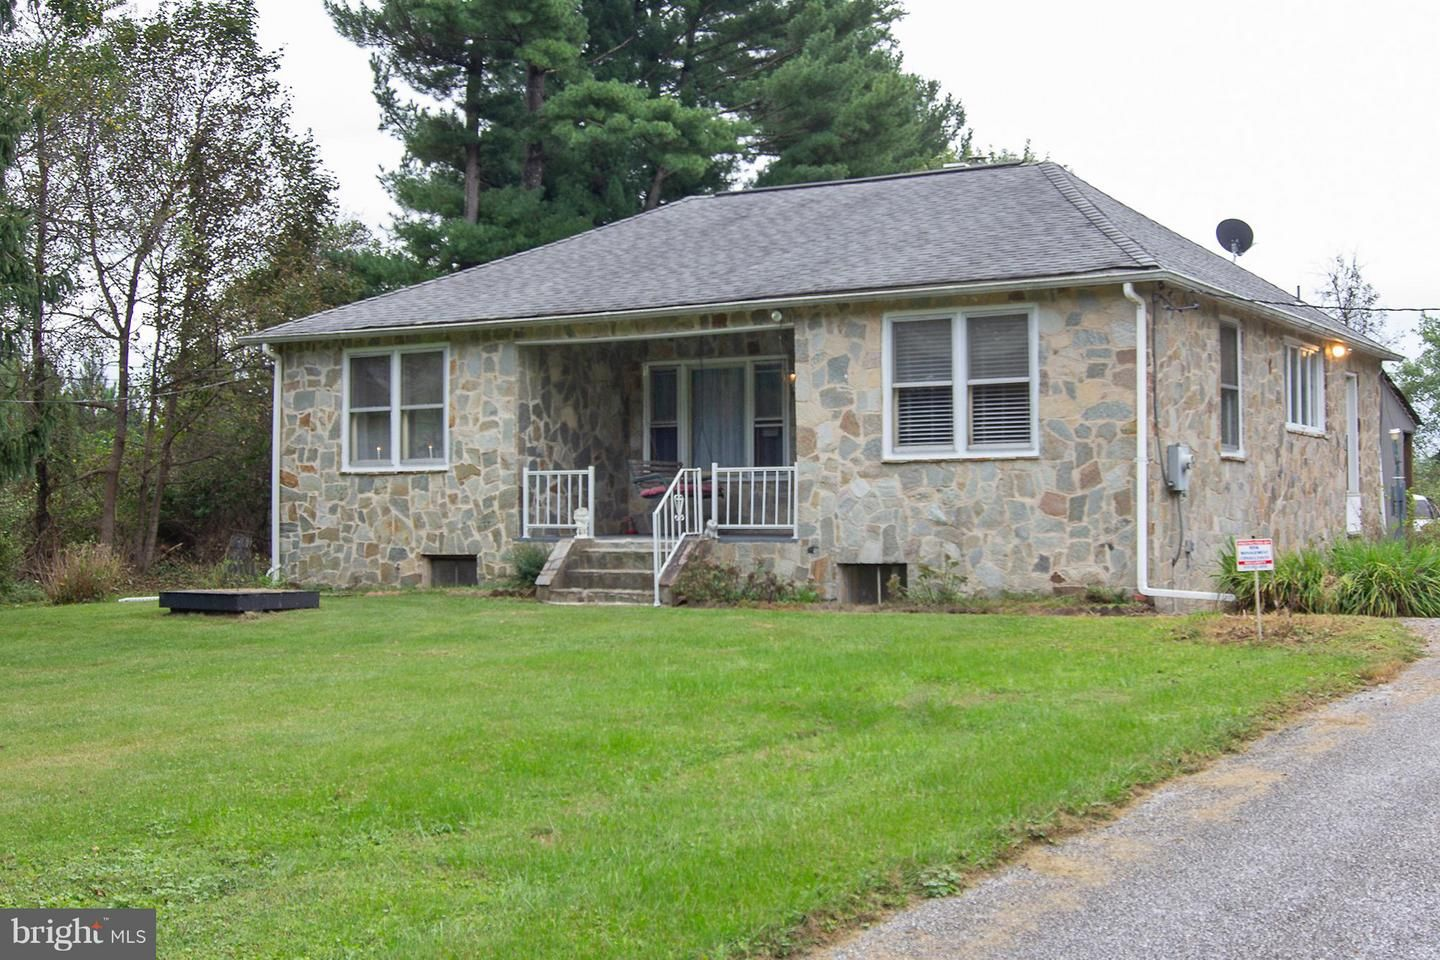 Fine 2929 Club House Rd Finksburg Md 21048 2 Bed 1 Bath Single Family Home Mls 1008232118 30 Photos Trulia Home Interior And Landscaping Synyenasavecom